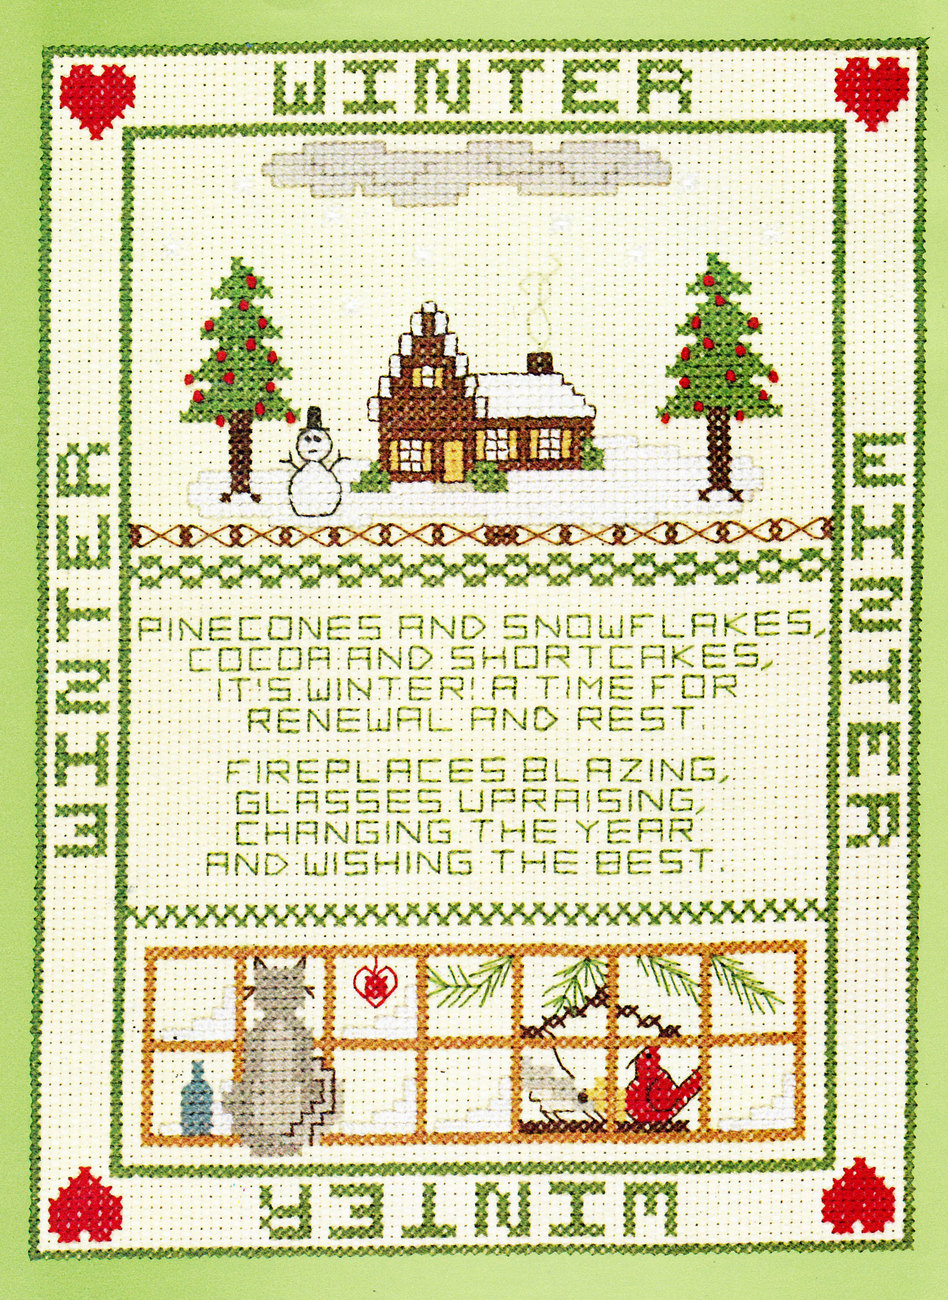 CROSS STITCH SAMPLERS FOR ALL SEASONS! GLORIA & PAT